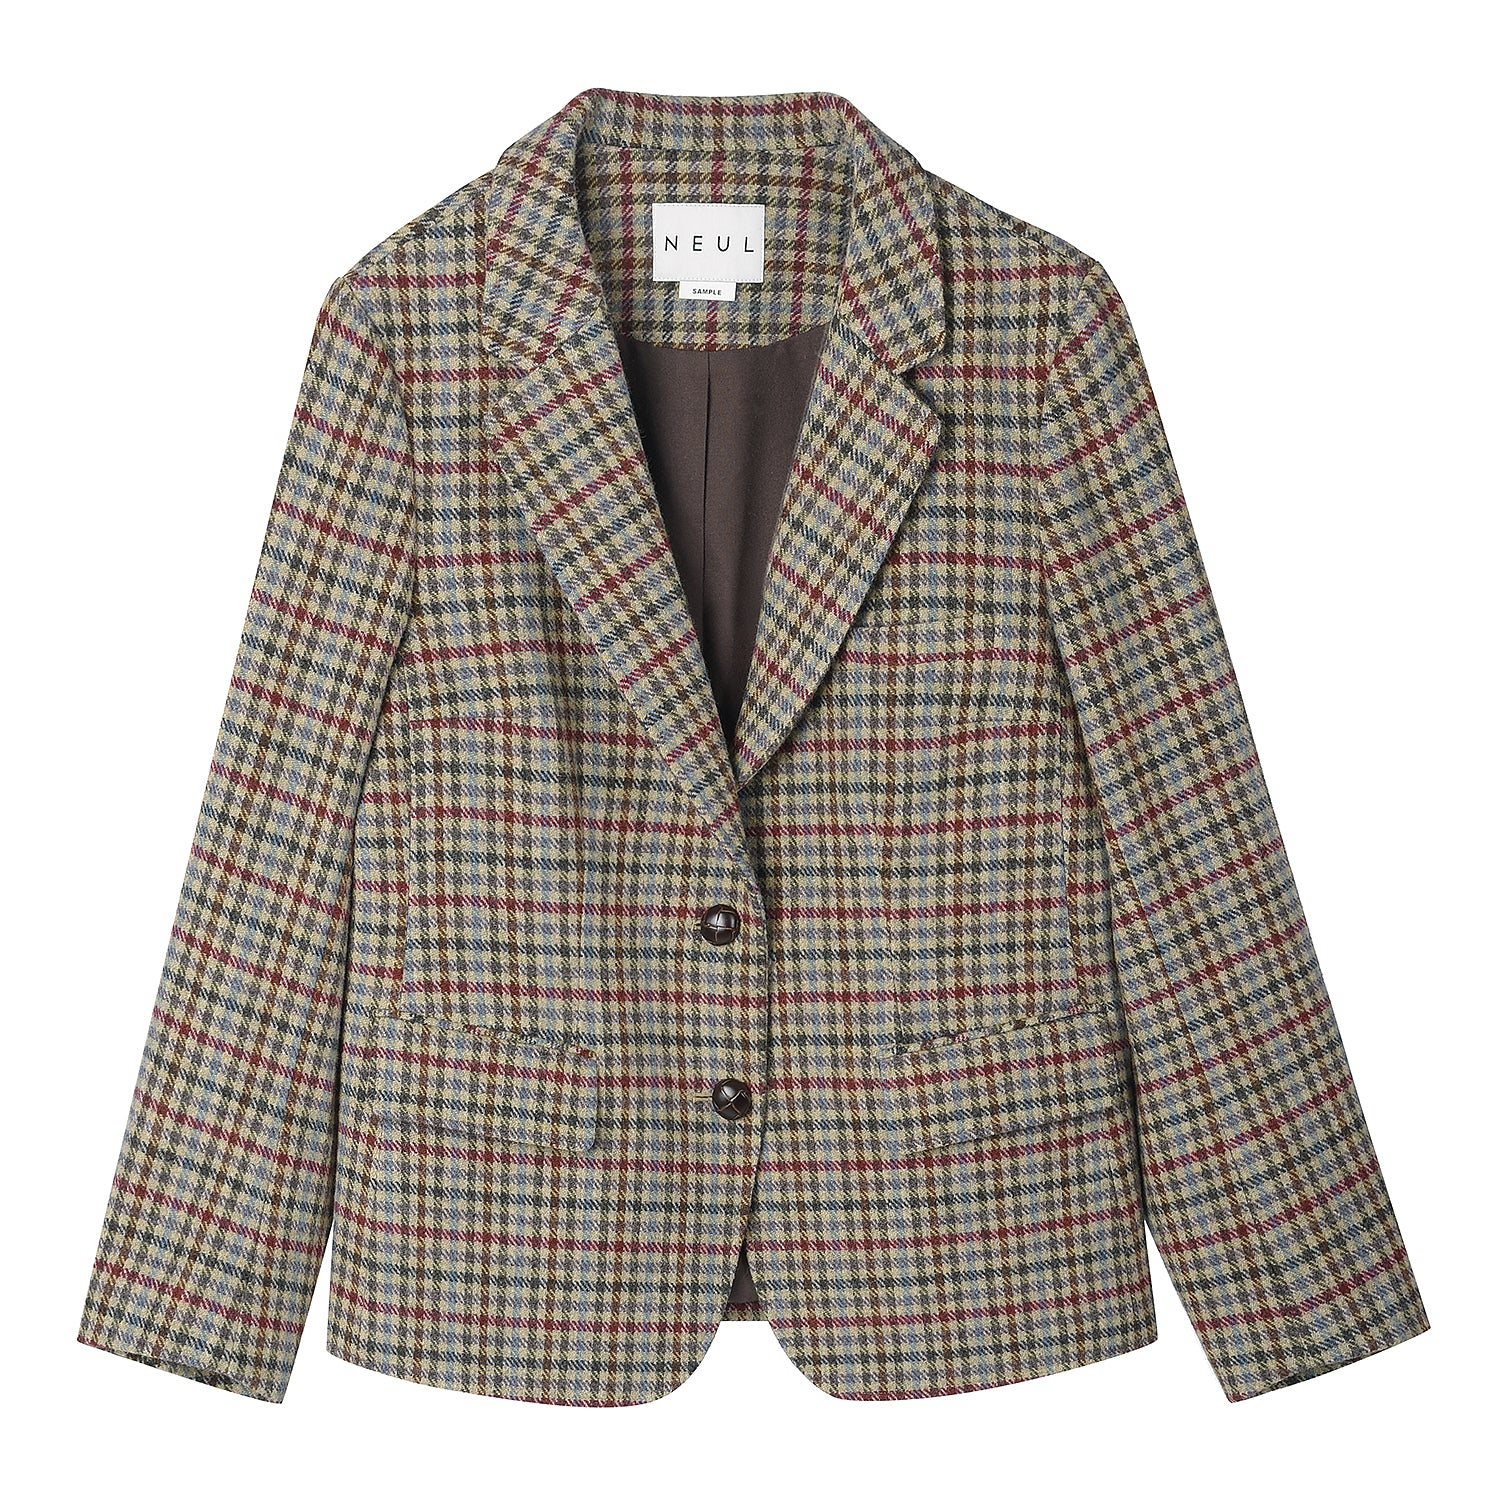 Neul - Vintage inspired check jacket